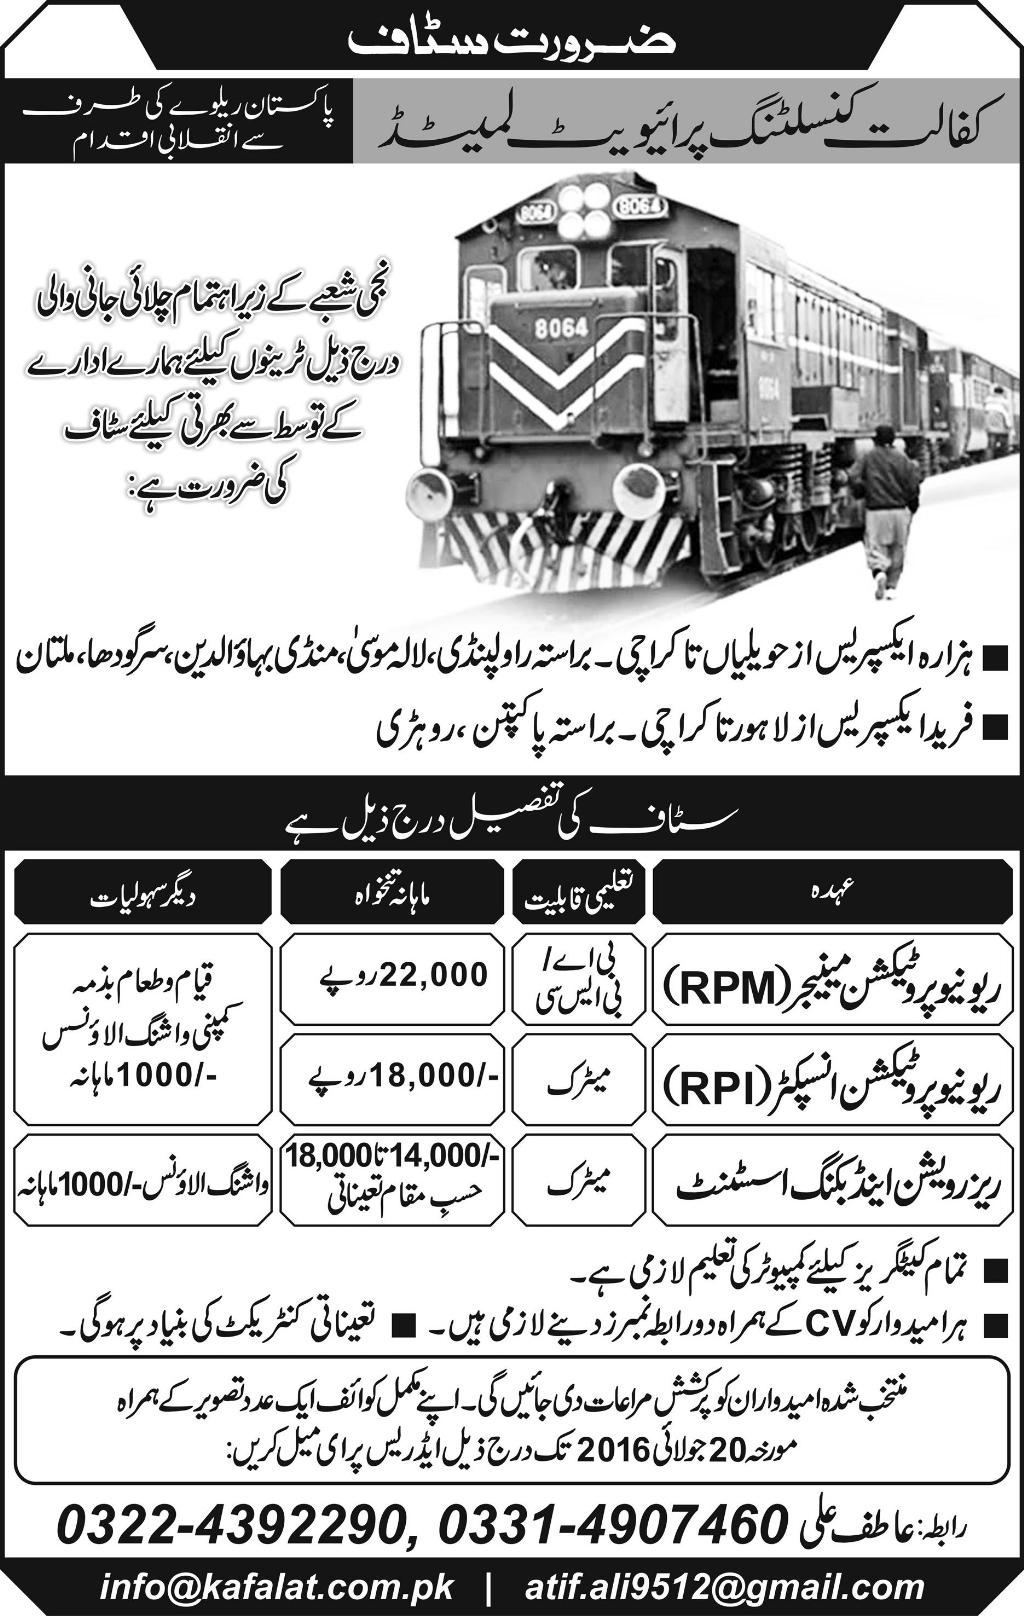 Kafalat Consulting Private Limited Paksitan Railways Jobs